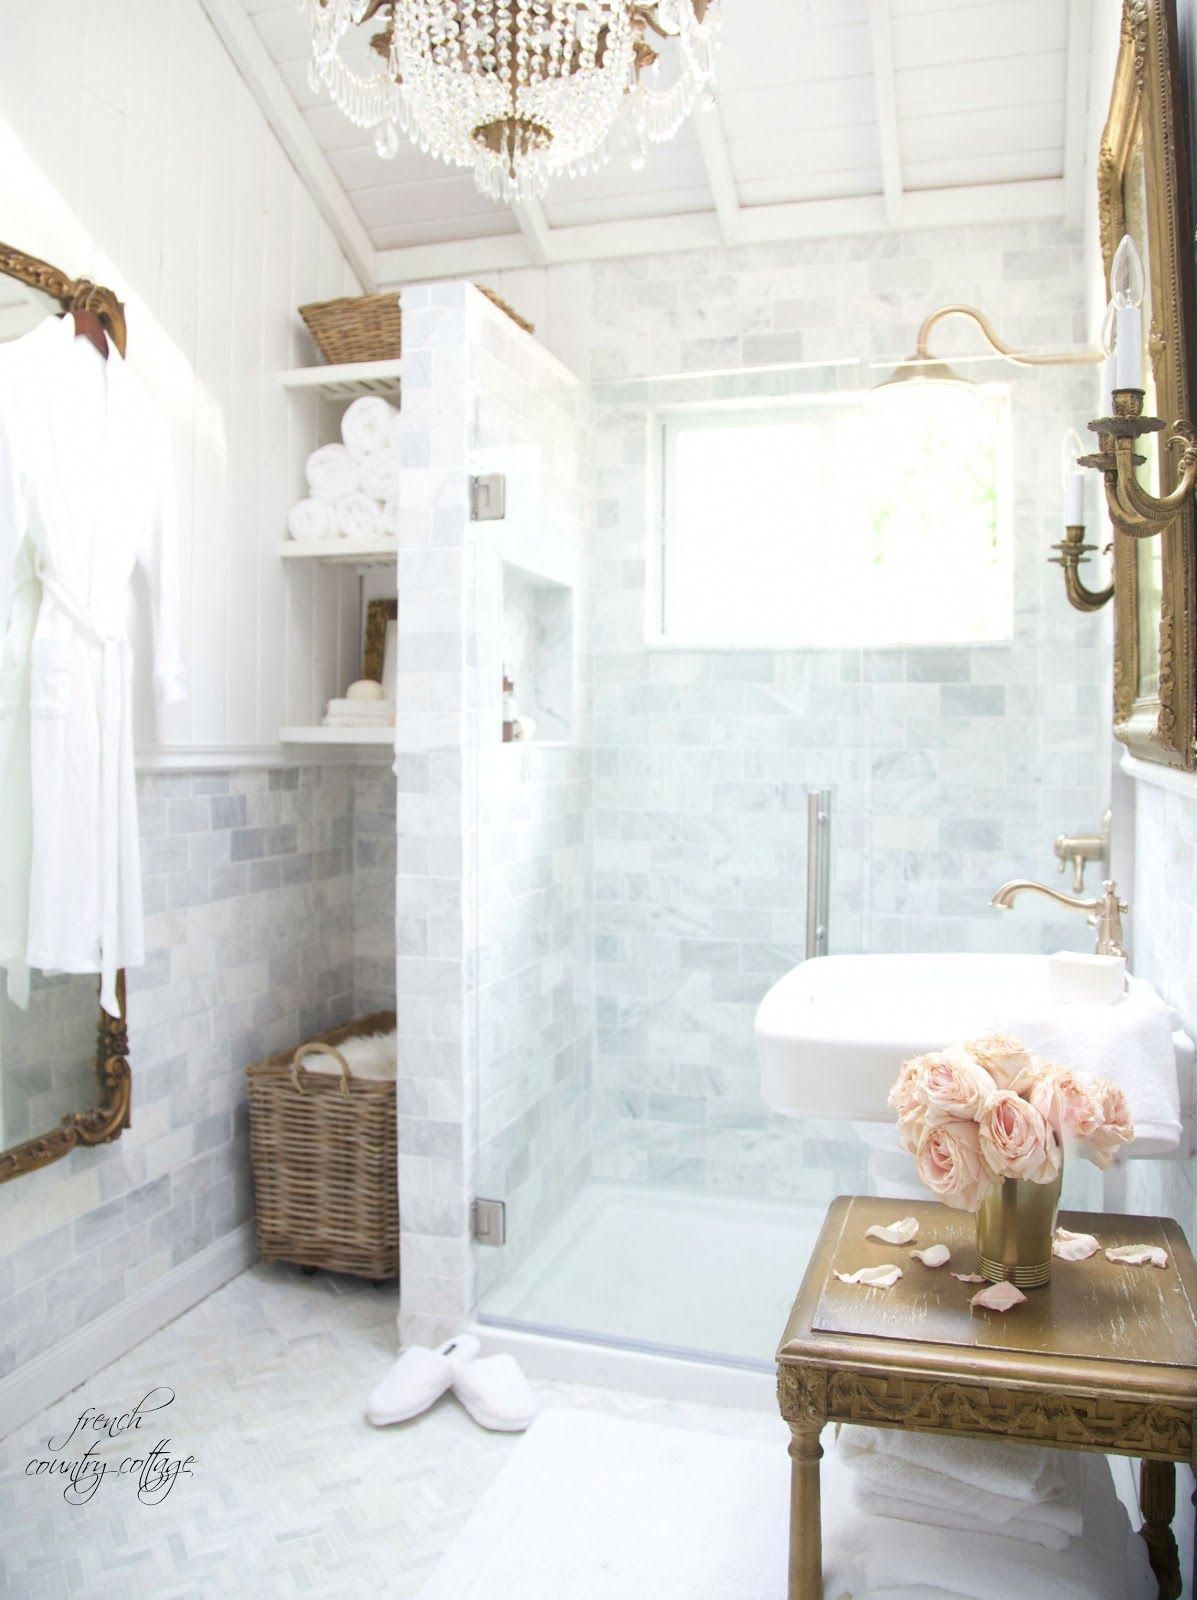 French Country Fridays 22 Modern Country Bathrooms French Country Bathroom Country Style Bathrooms